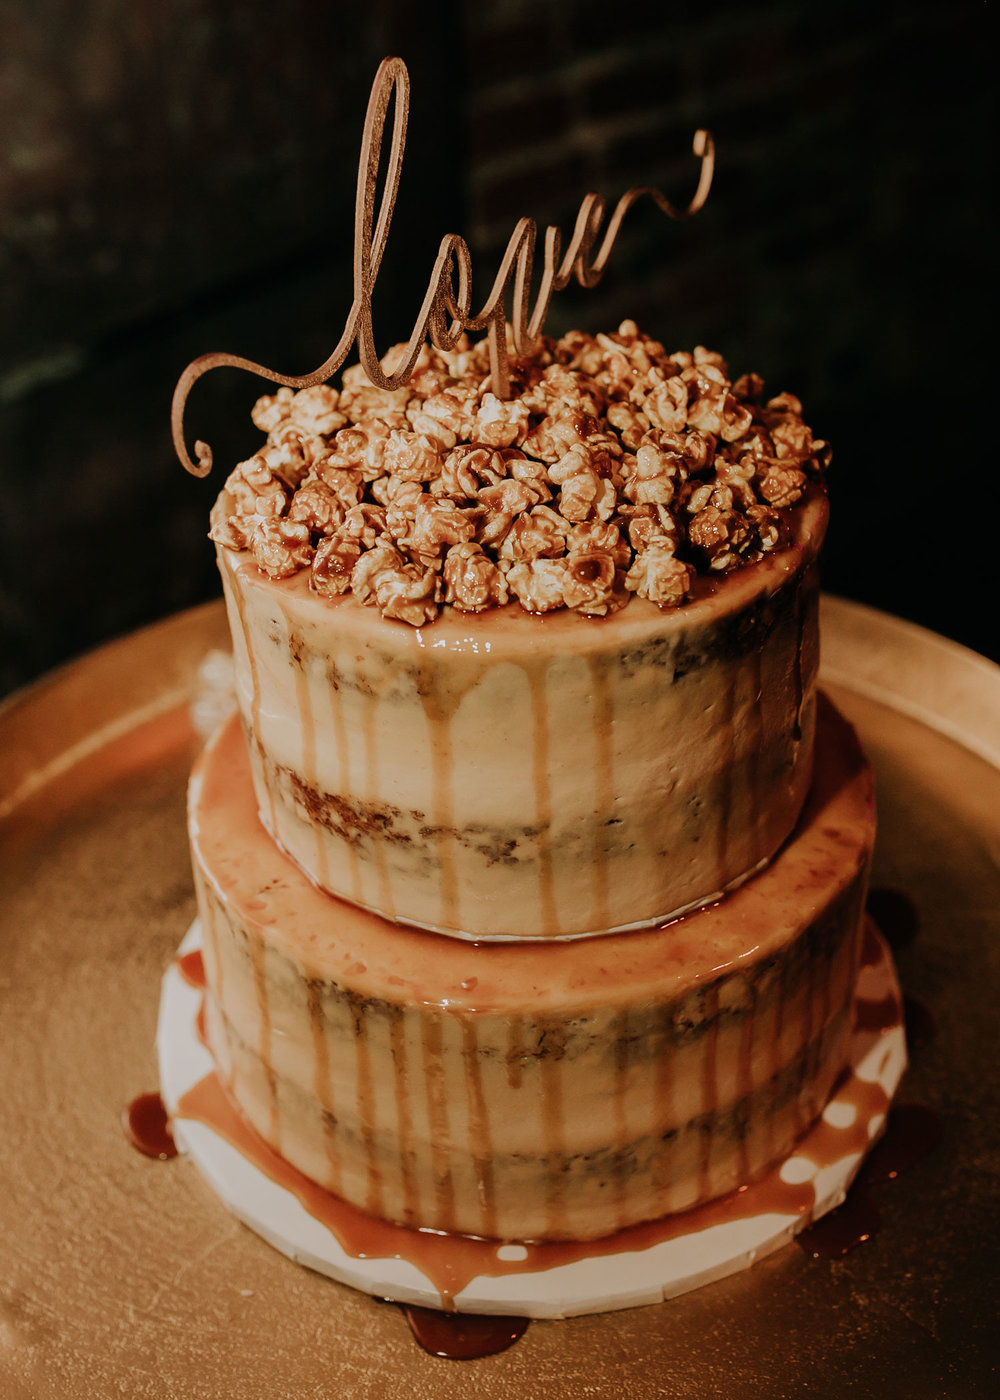 carmel-popcorn-cake-by-cupcake-island-founders-one-nine-omaha-nebraska-raelyn-ramey-photography.jpg